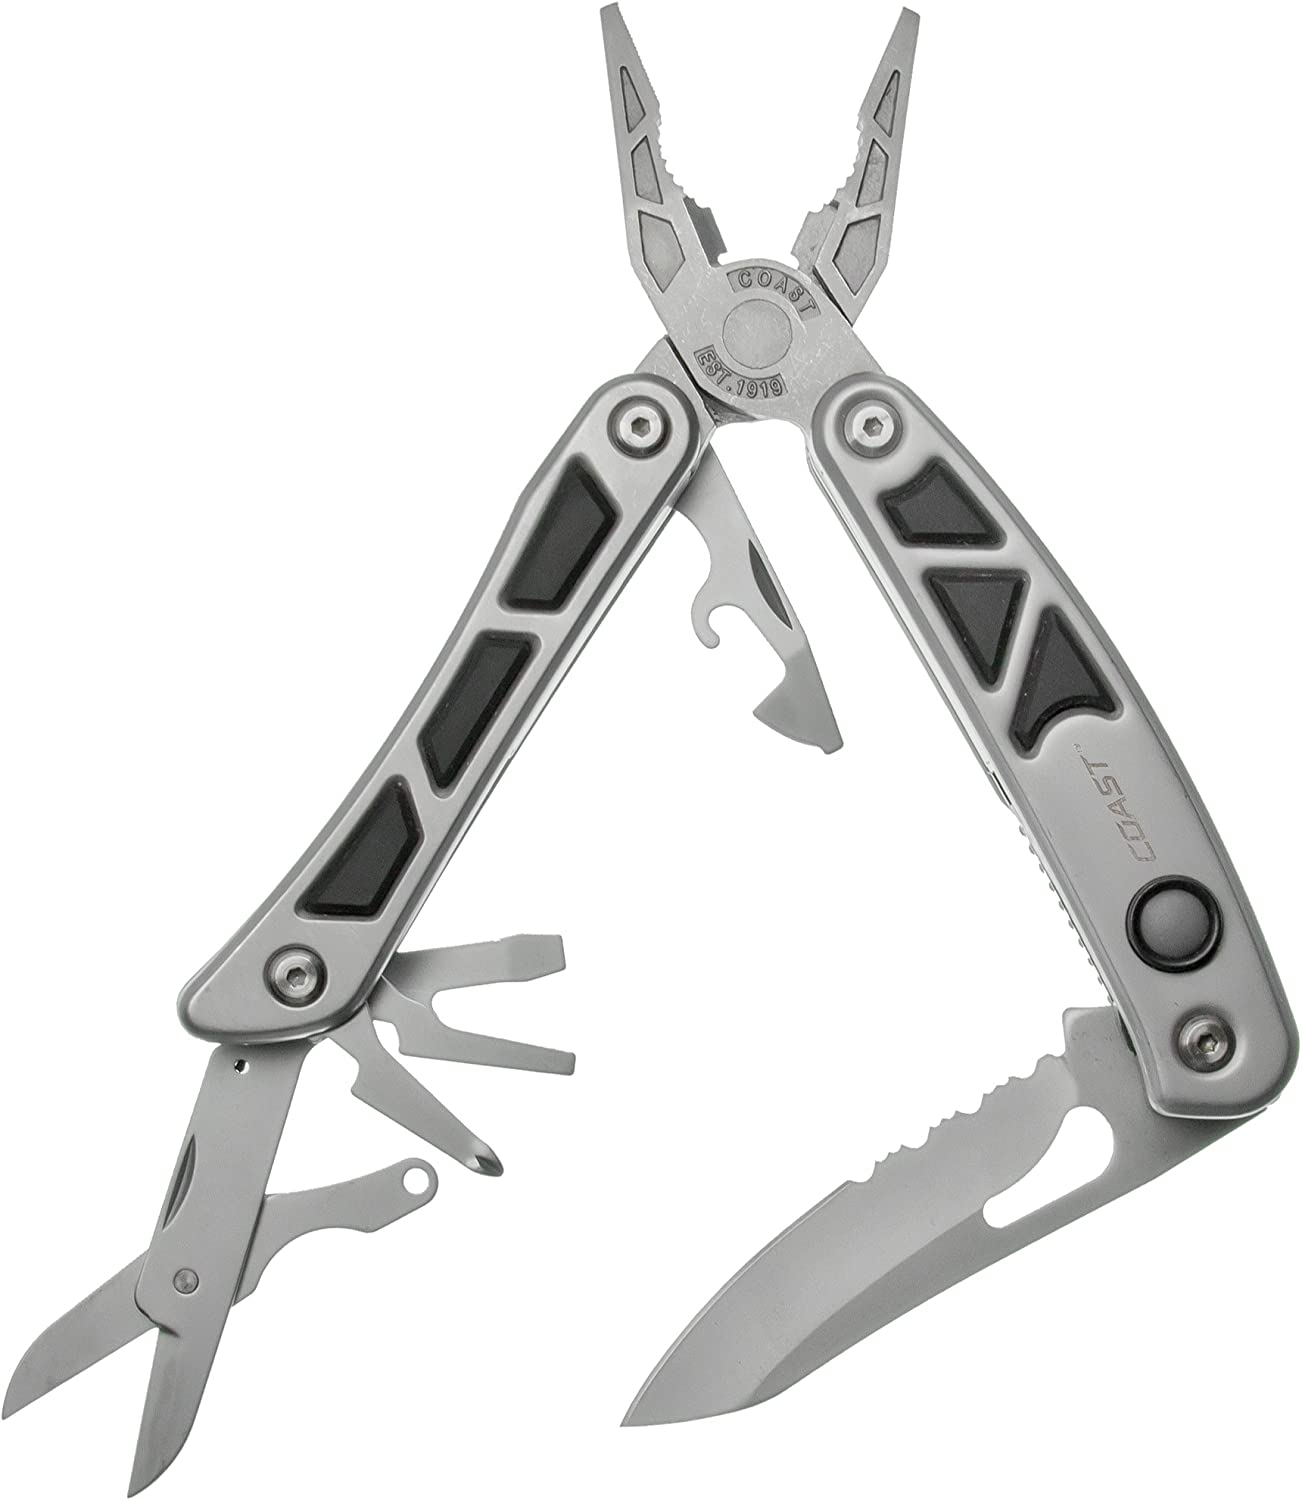 LED150 Dual LED Multi-Tool with 13 Tools, 3 Inch Stainless Steel Blade and 2 Built-In LED Lights